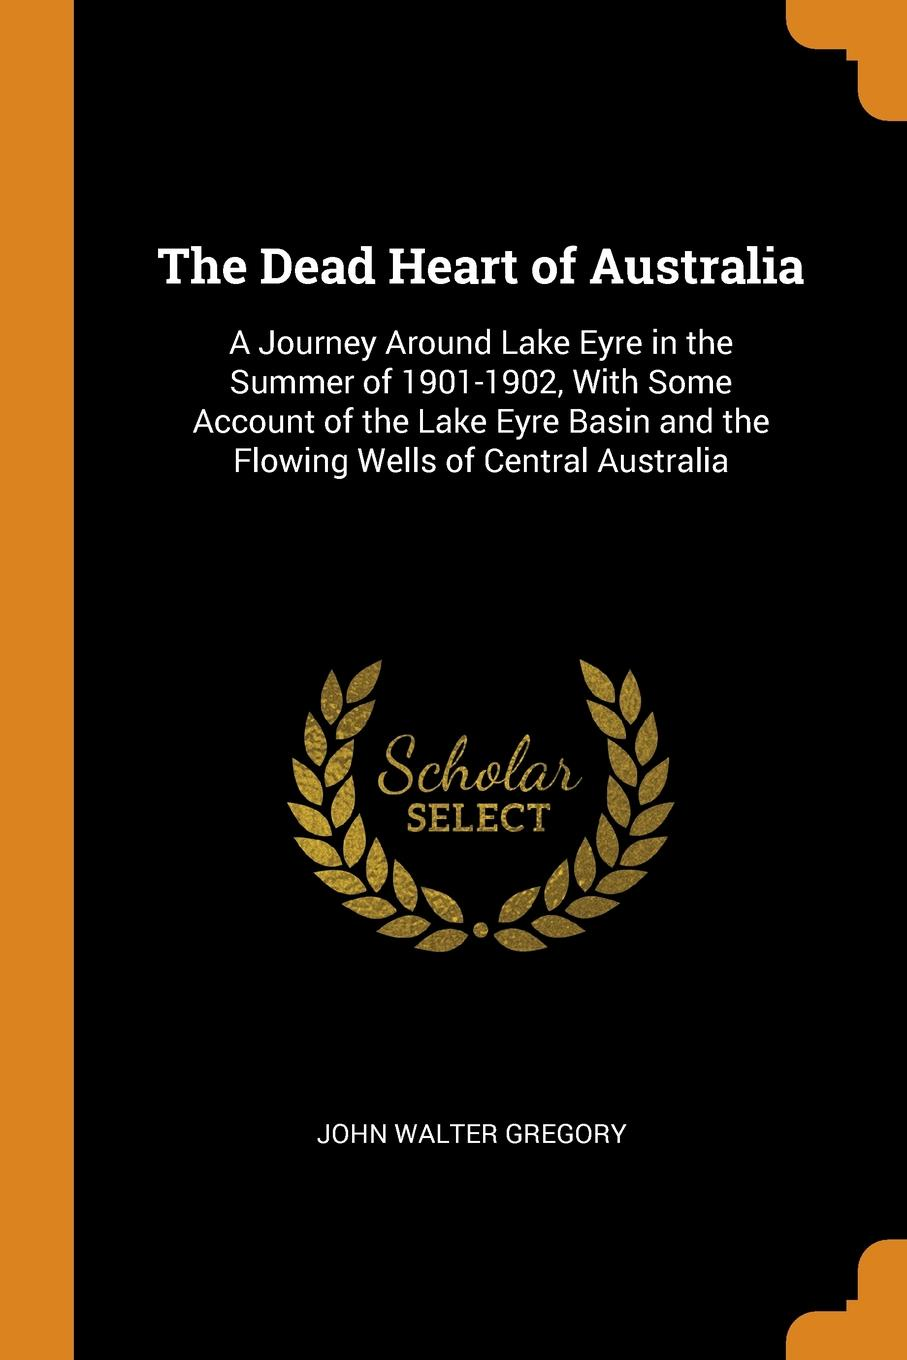 The Dead Heart of Australia. A Journey Around Lake Eyre in the Summer of 1901-1902, With Some Account of the Lake Eyre Basin and the Flowing Wells of Central Australia